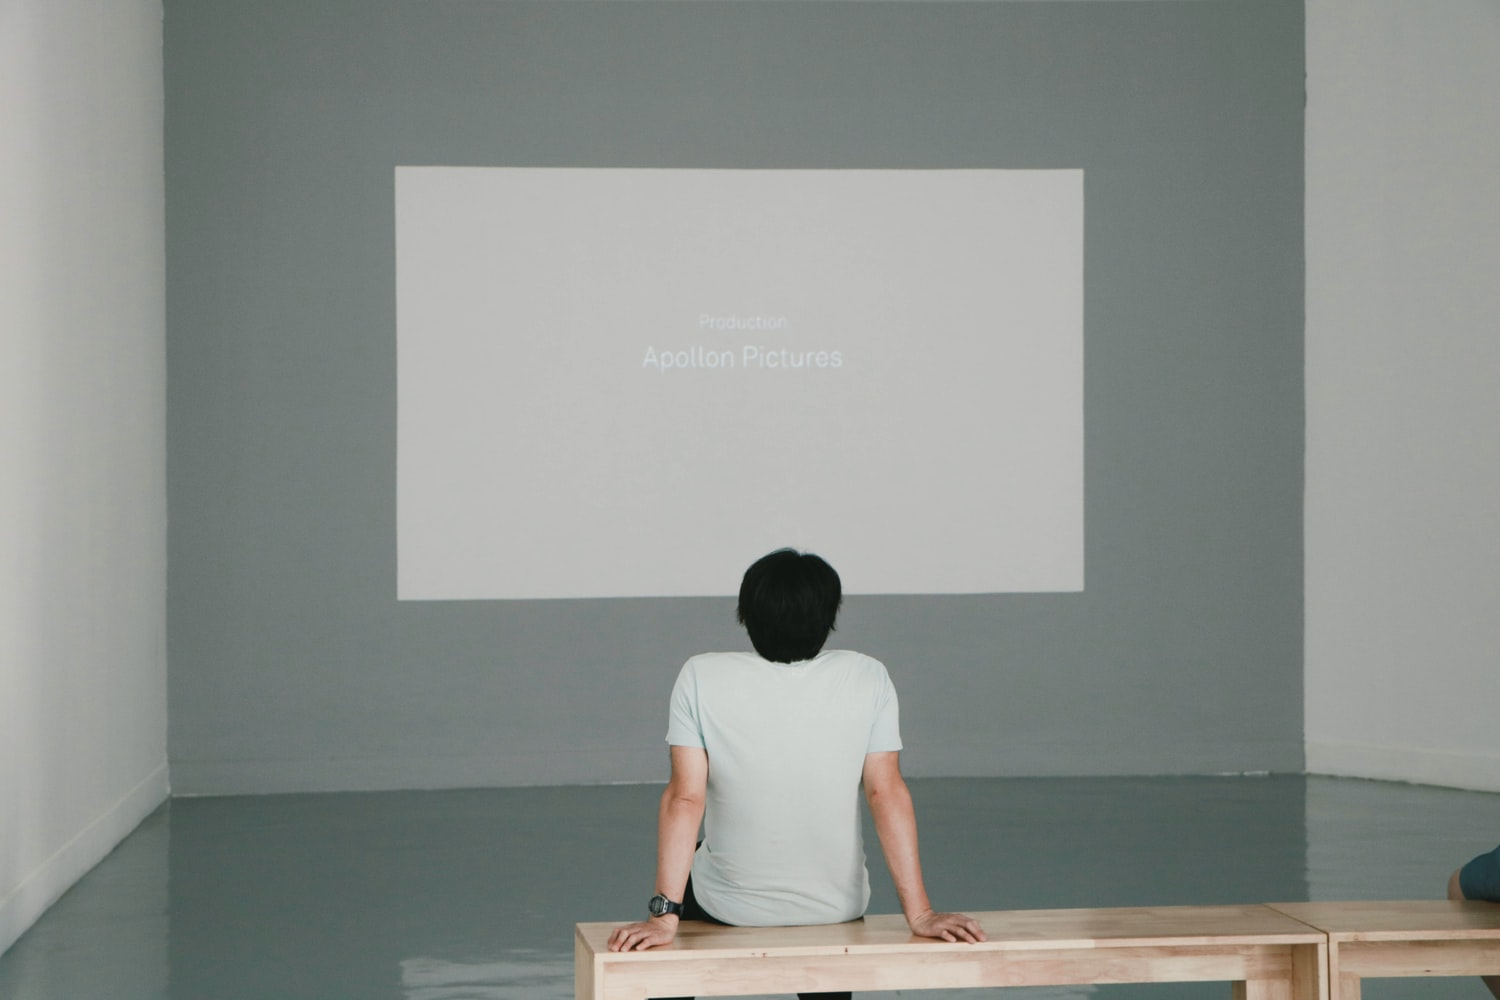 a man sitting on the table, in front of the projector screen